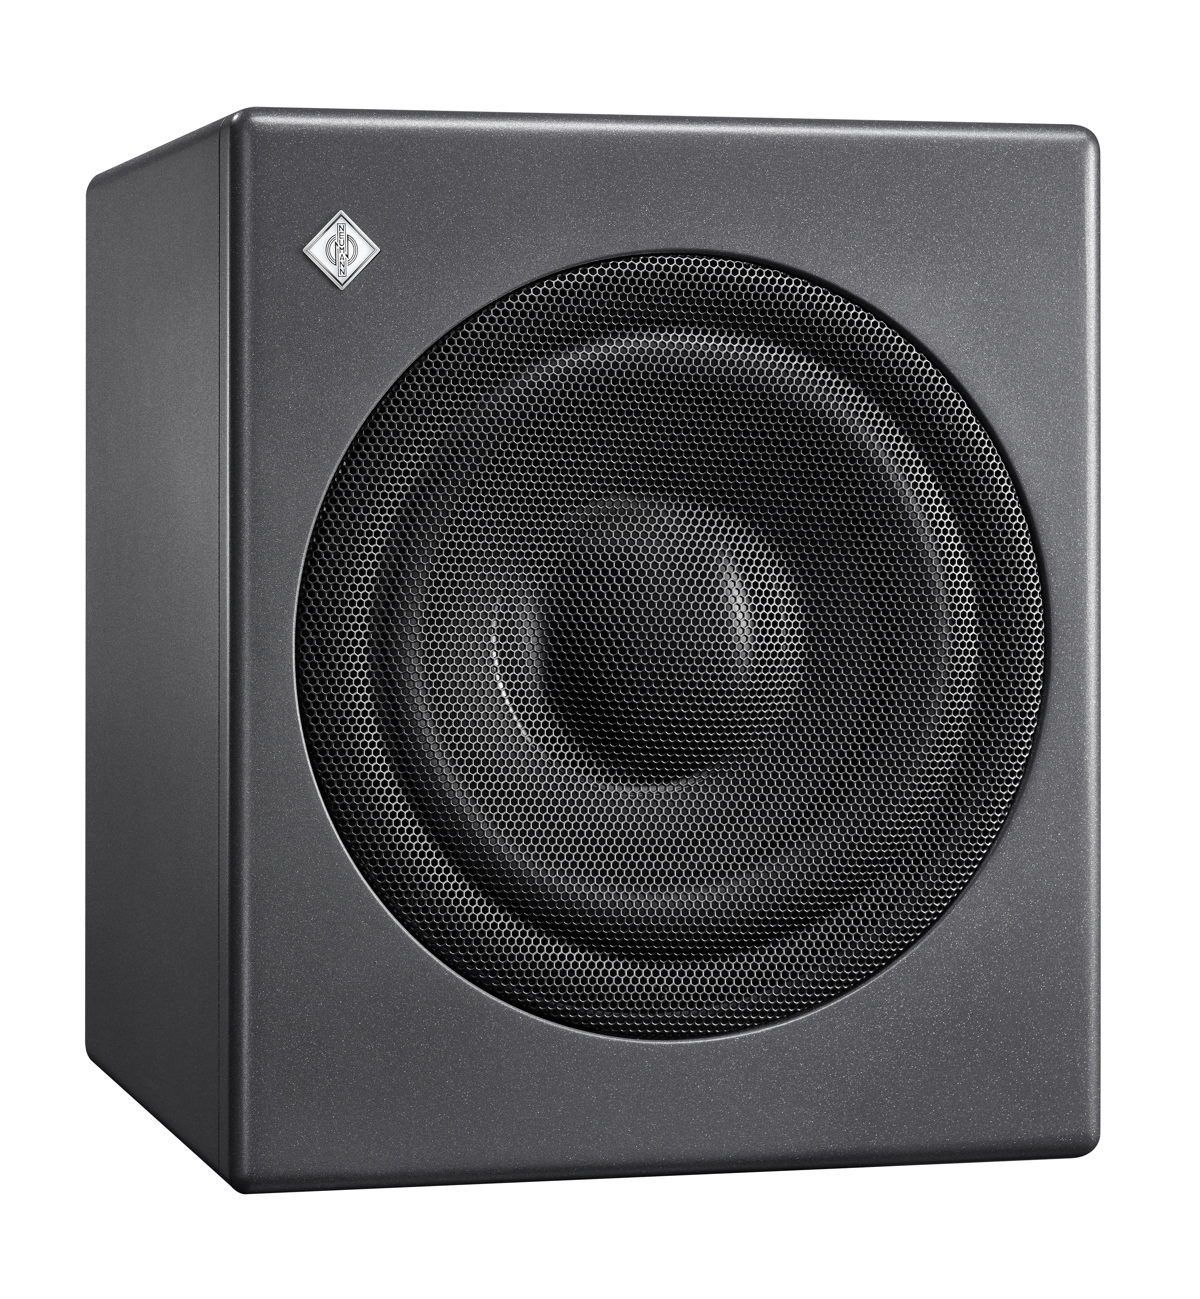 The KH 750 DSP is a particularly compact subwoofer for broadcast, music and post production studios